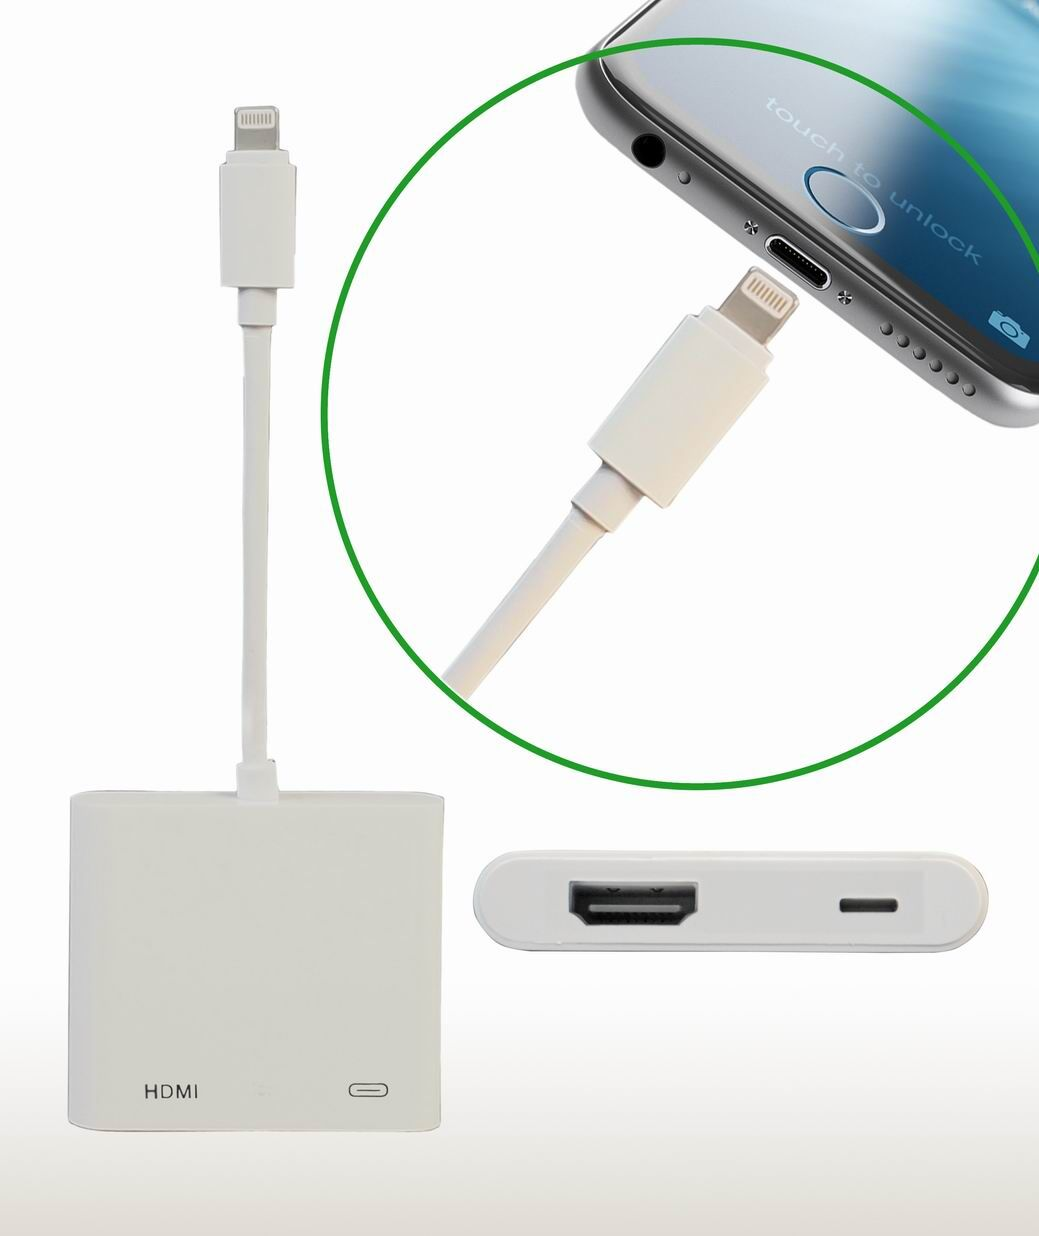 iphone to hdmi. superb choice not for netflix and amazon prime - lightning digital av adapter hdmi connector connecting iphone 5/6/7 ipad to equipped tv projector hdmi l